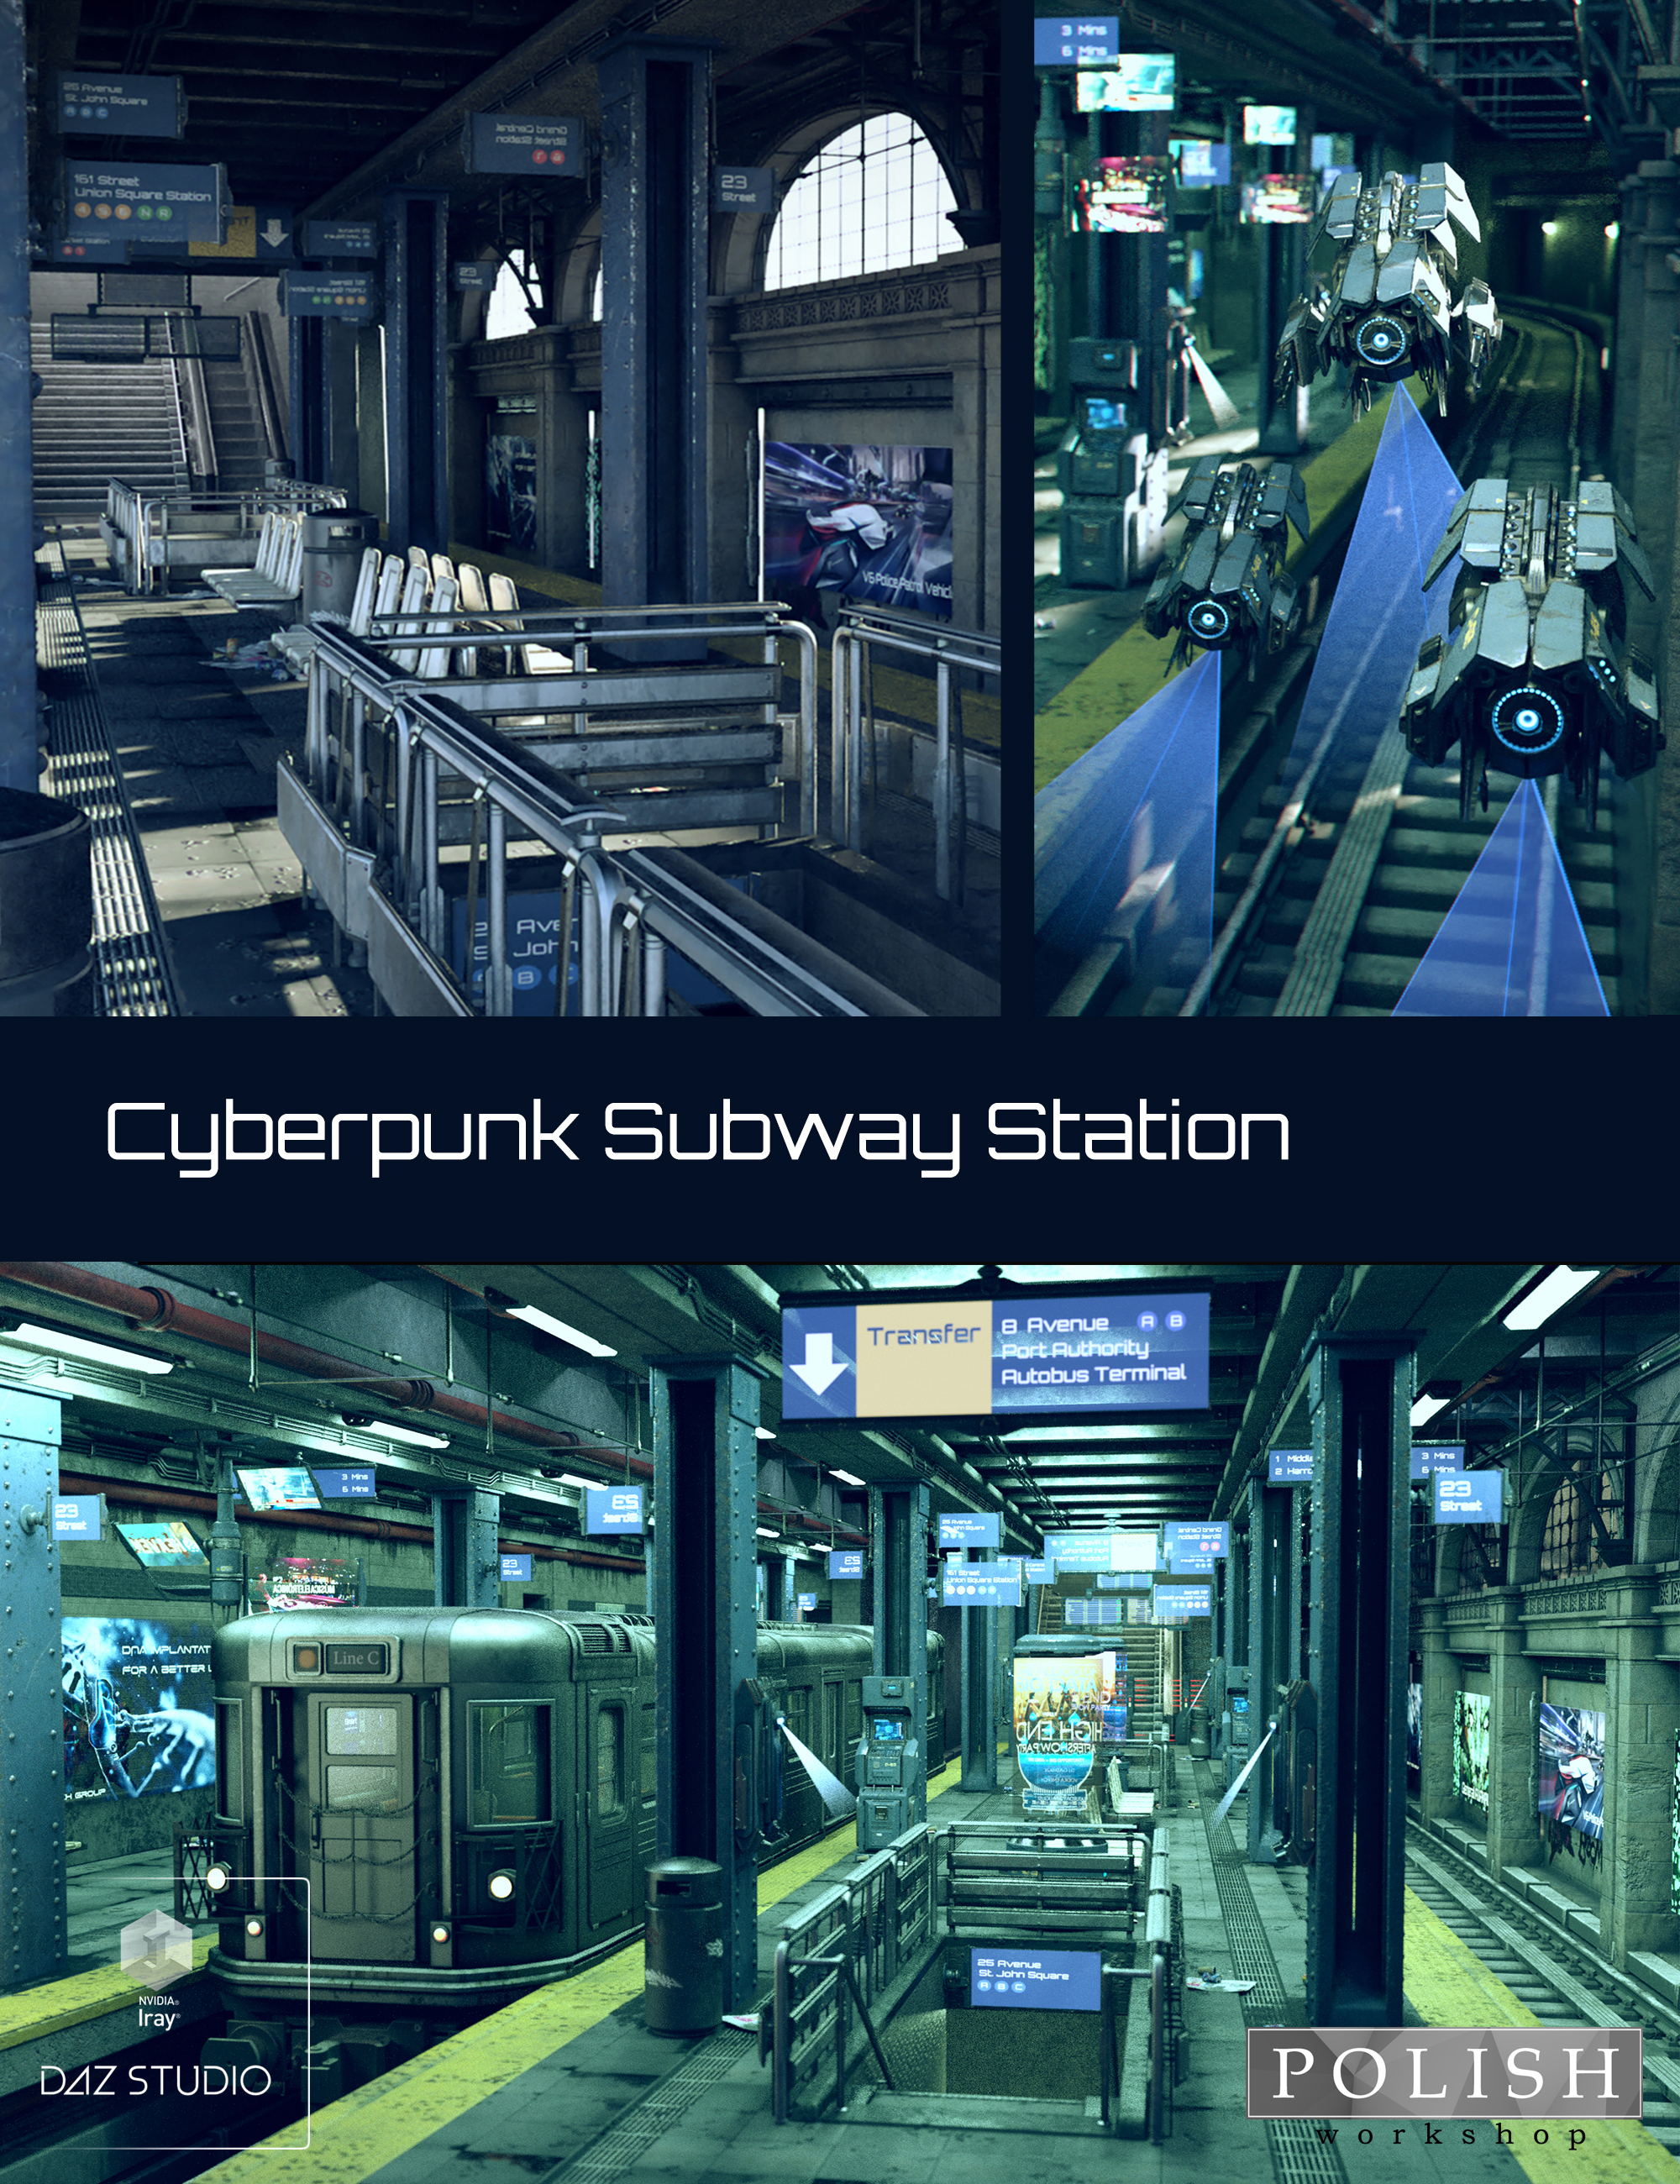 Cyberpunk Subway Station by: Polish, 3D Models by Daz 3D